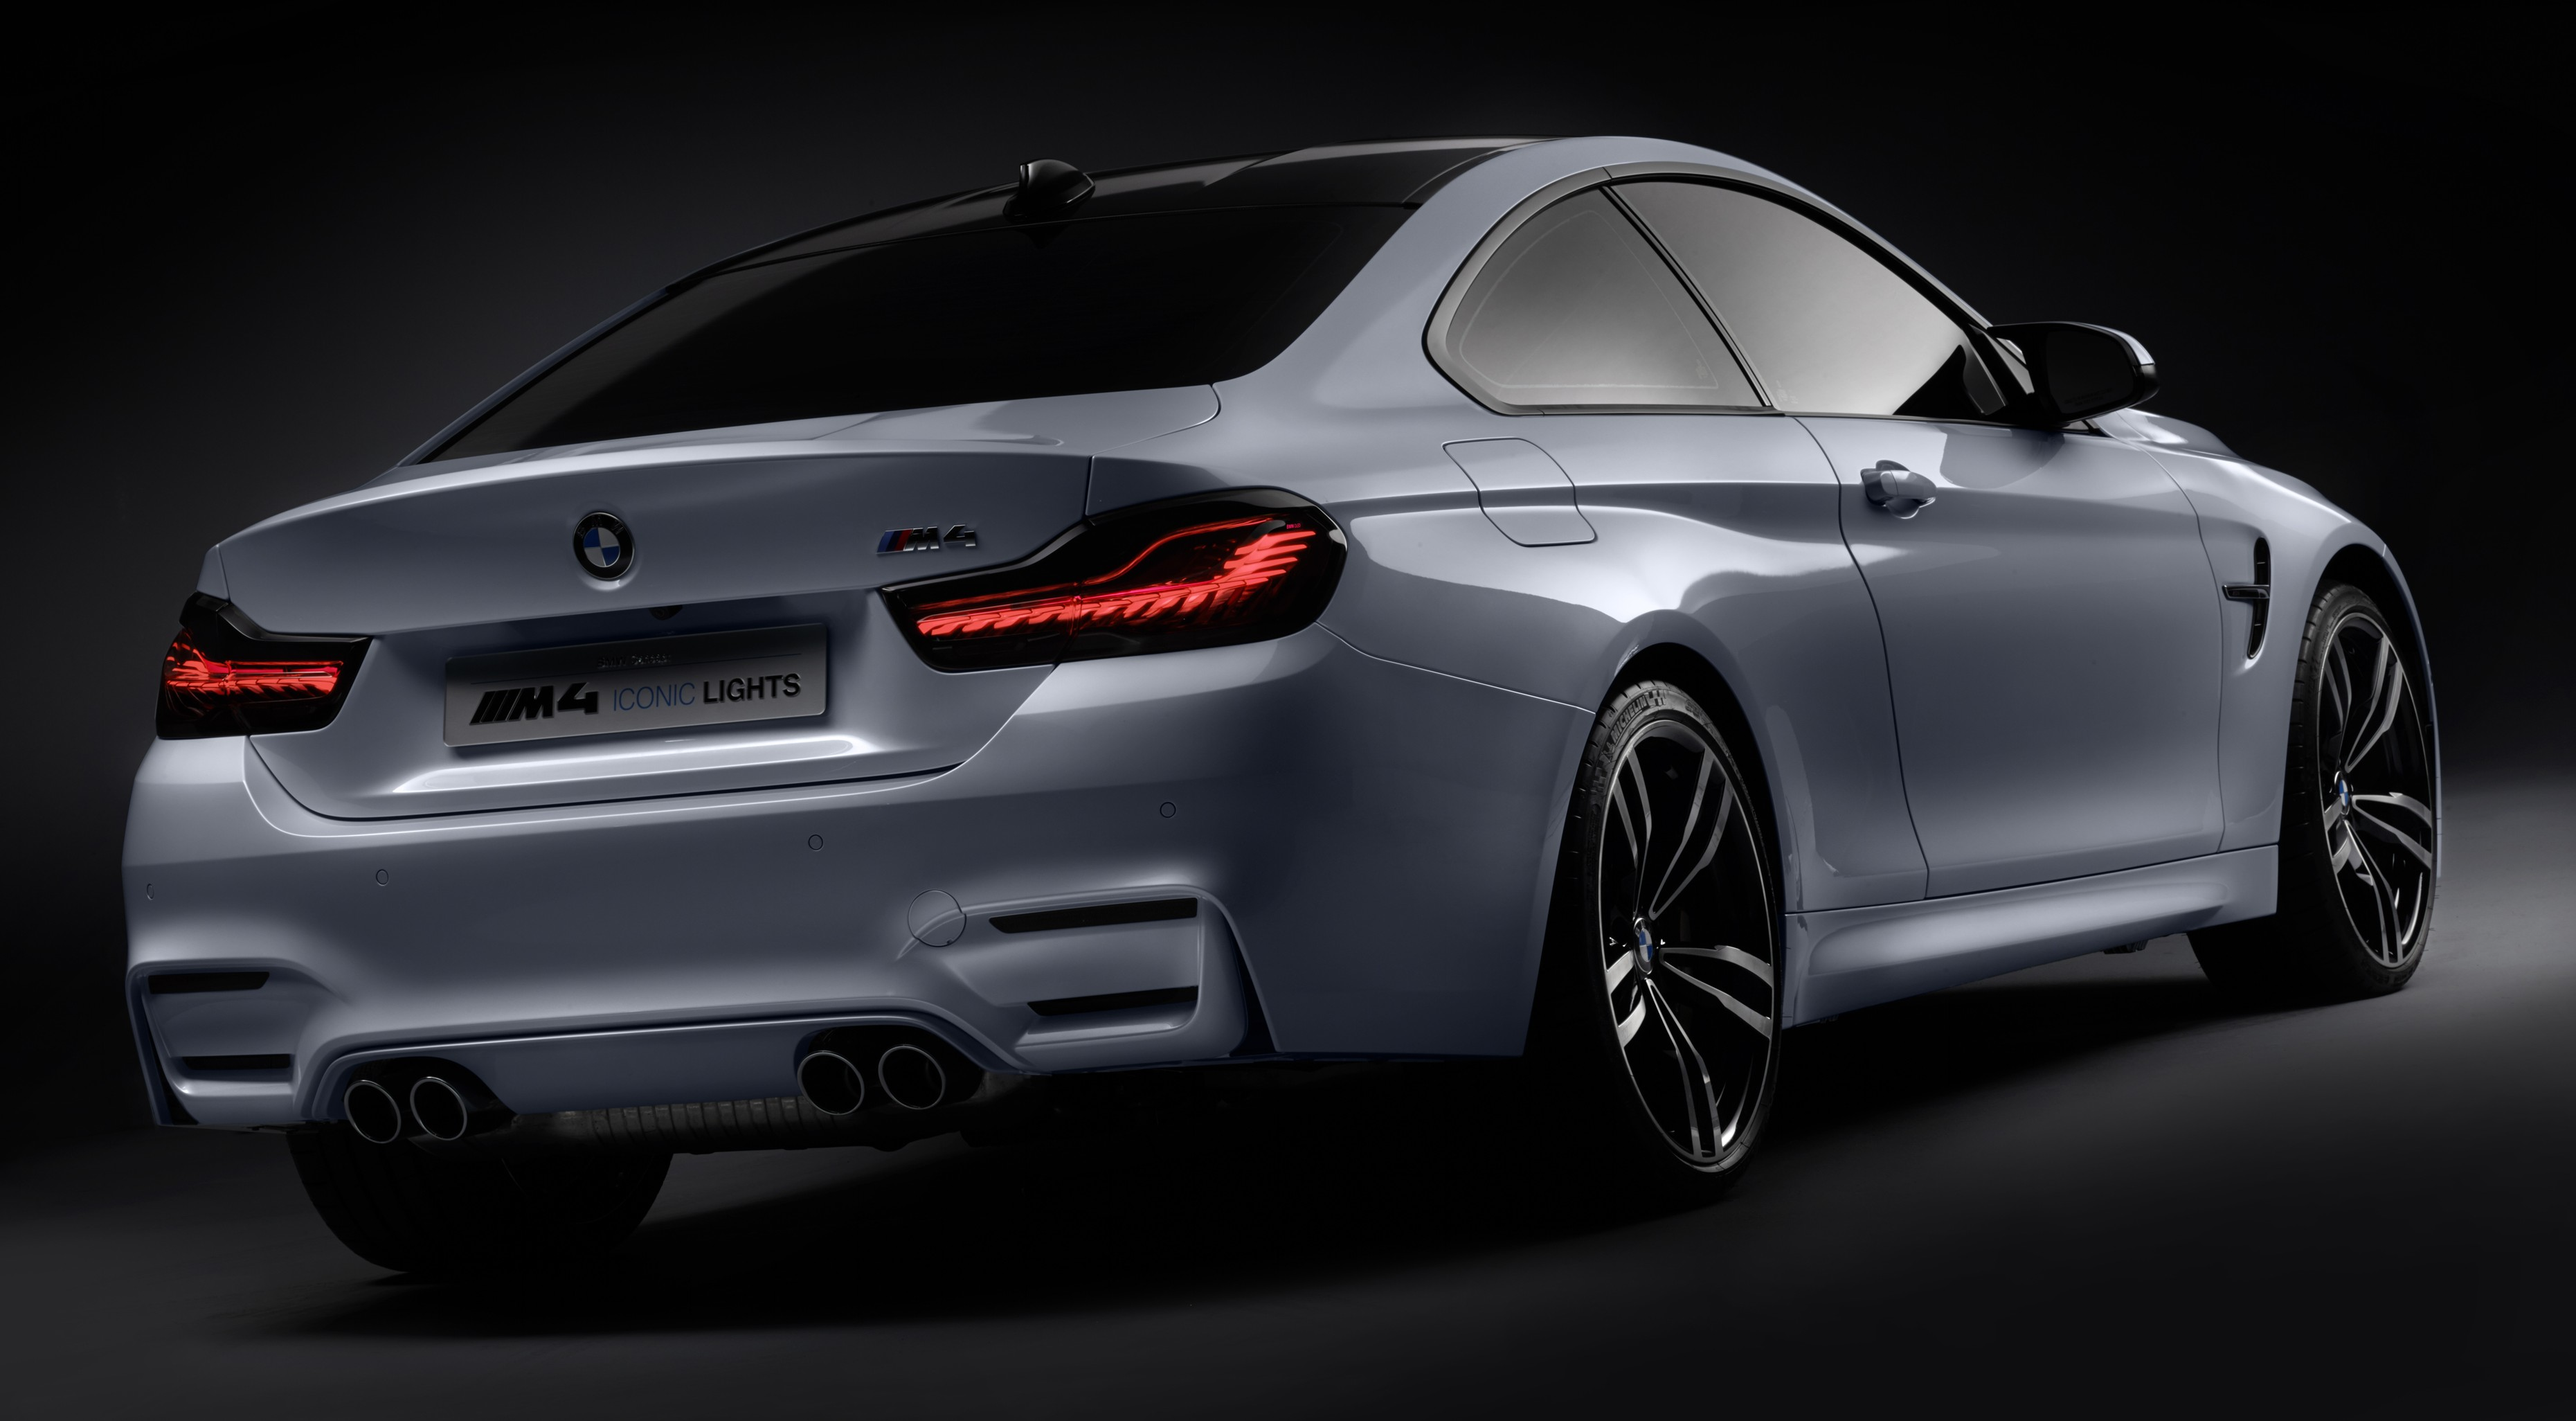 CES 2015: BMW M4 Concept Iconic Lights showcases laser and ...